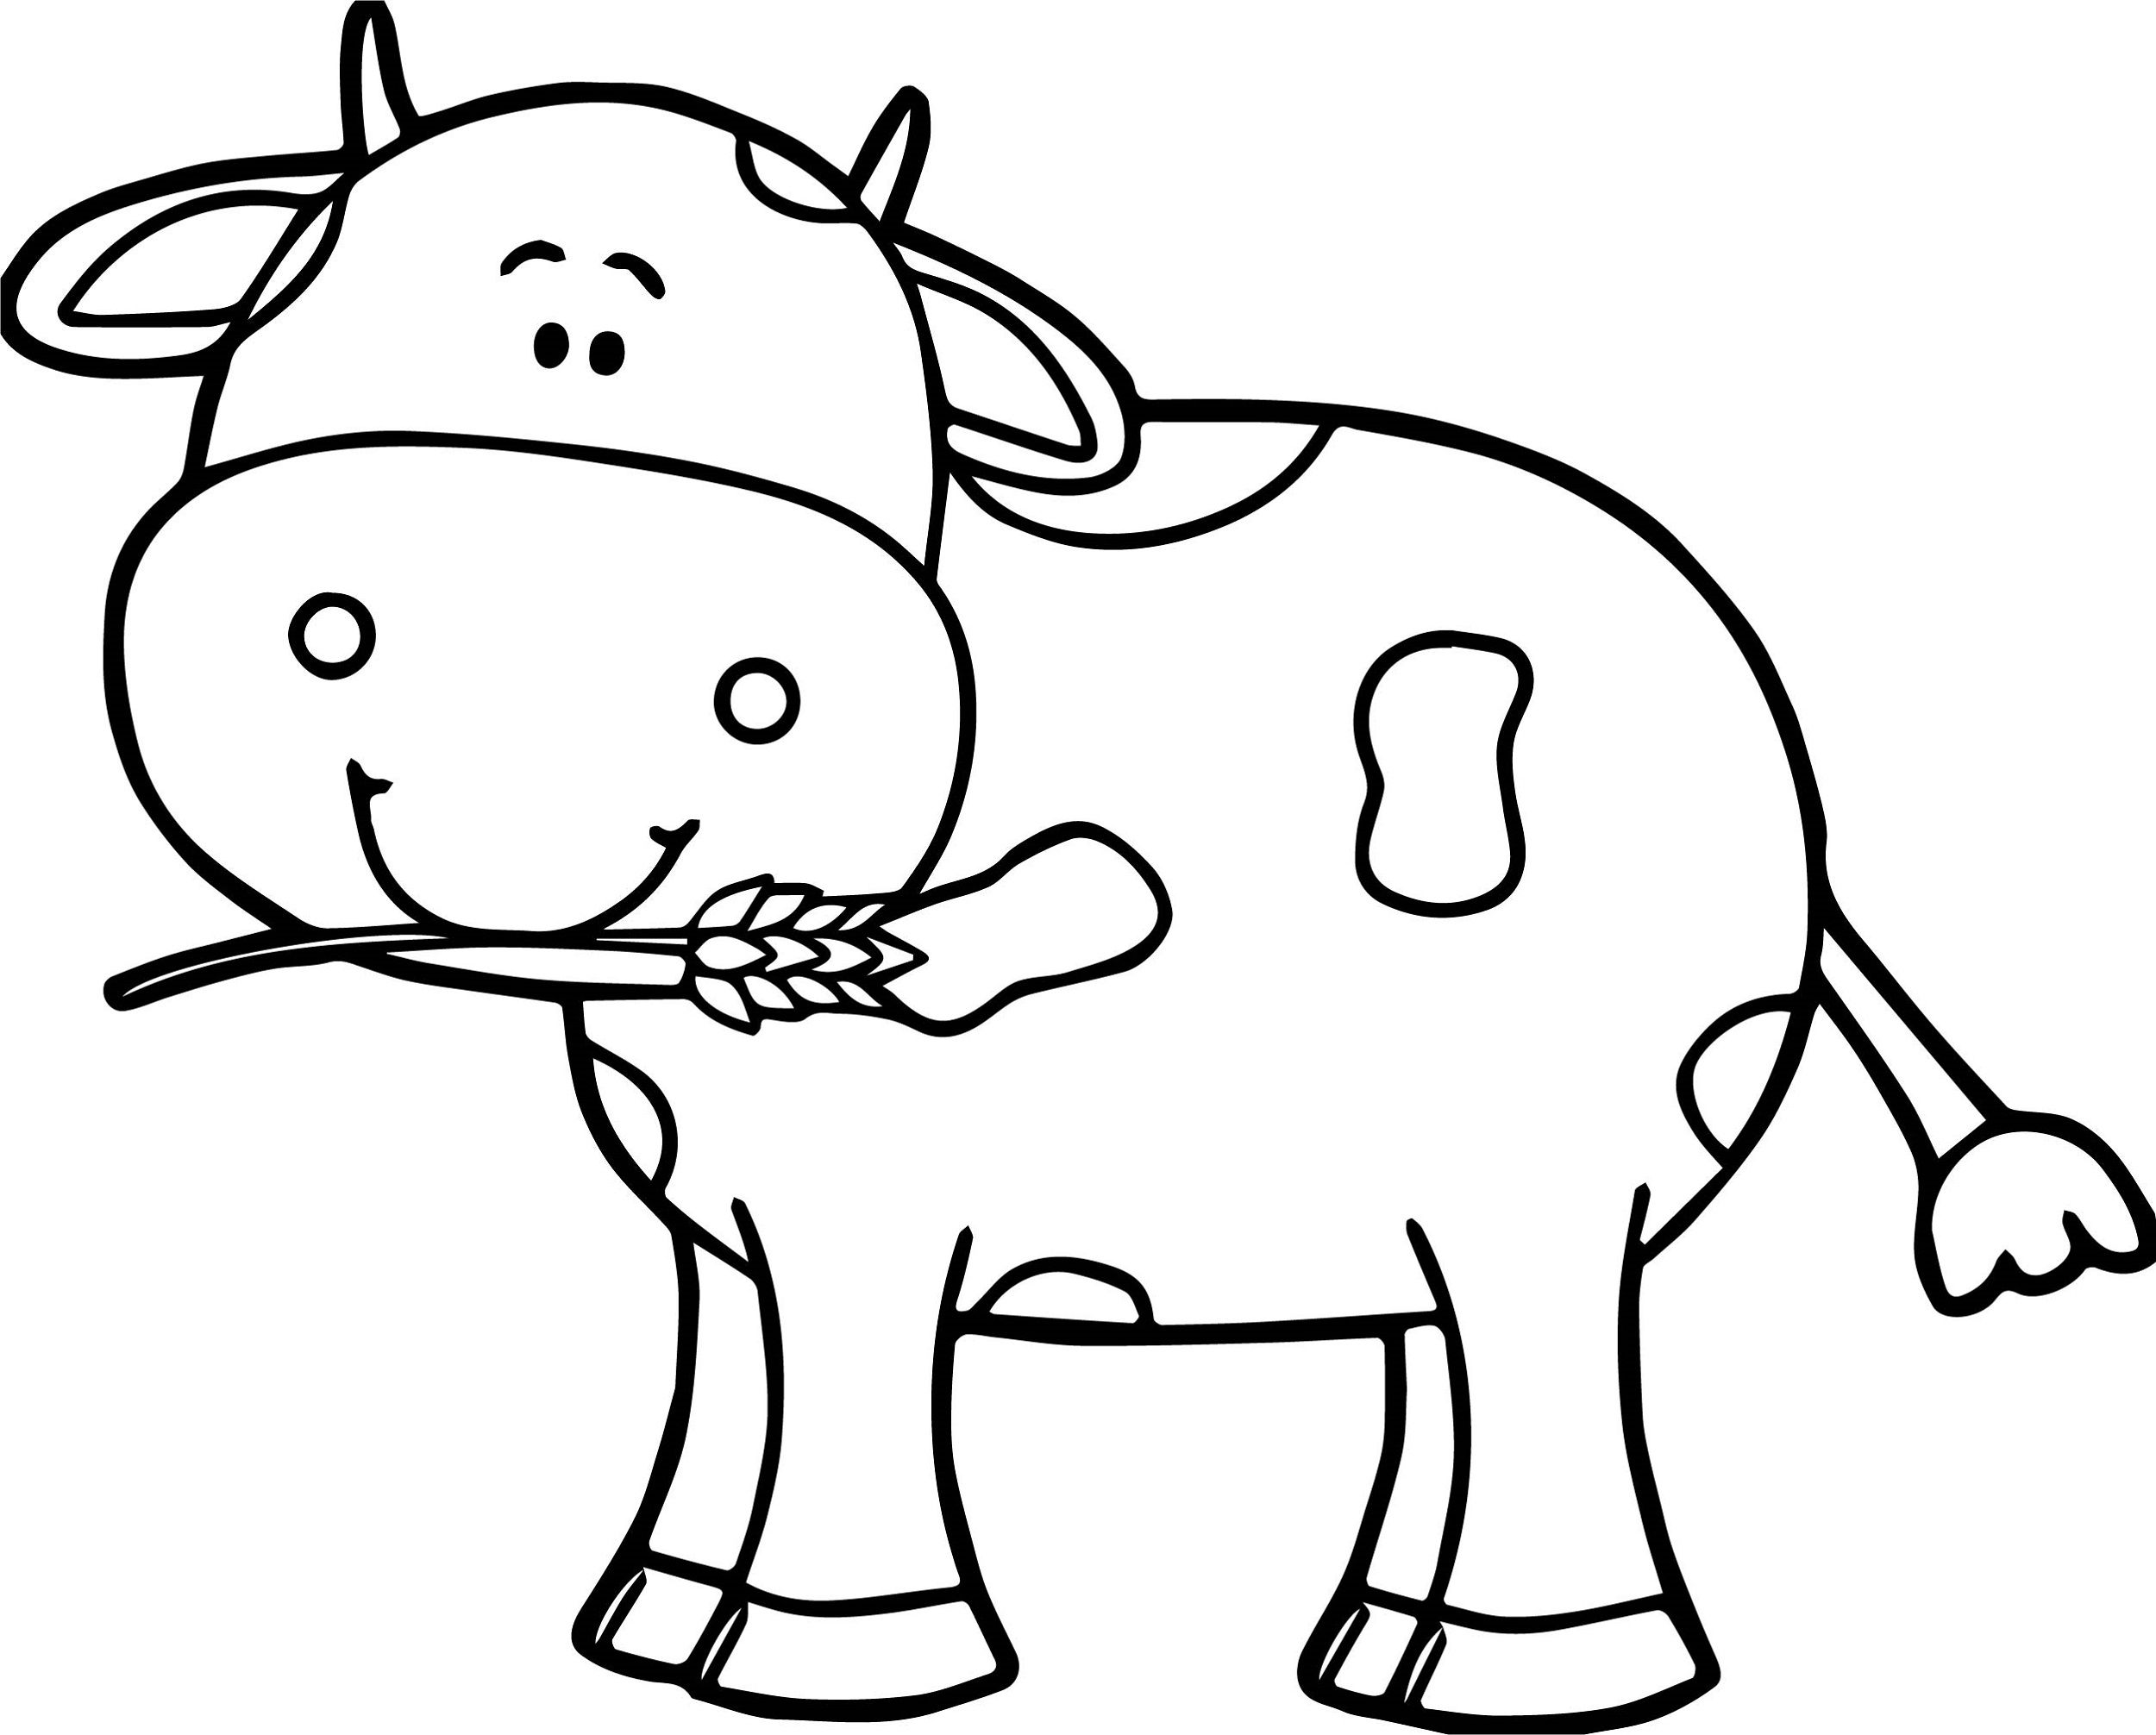 Printable Drawing For Kids To Colour